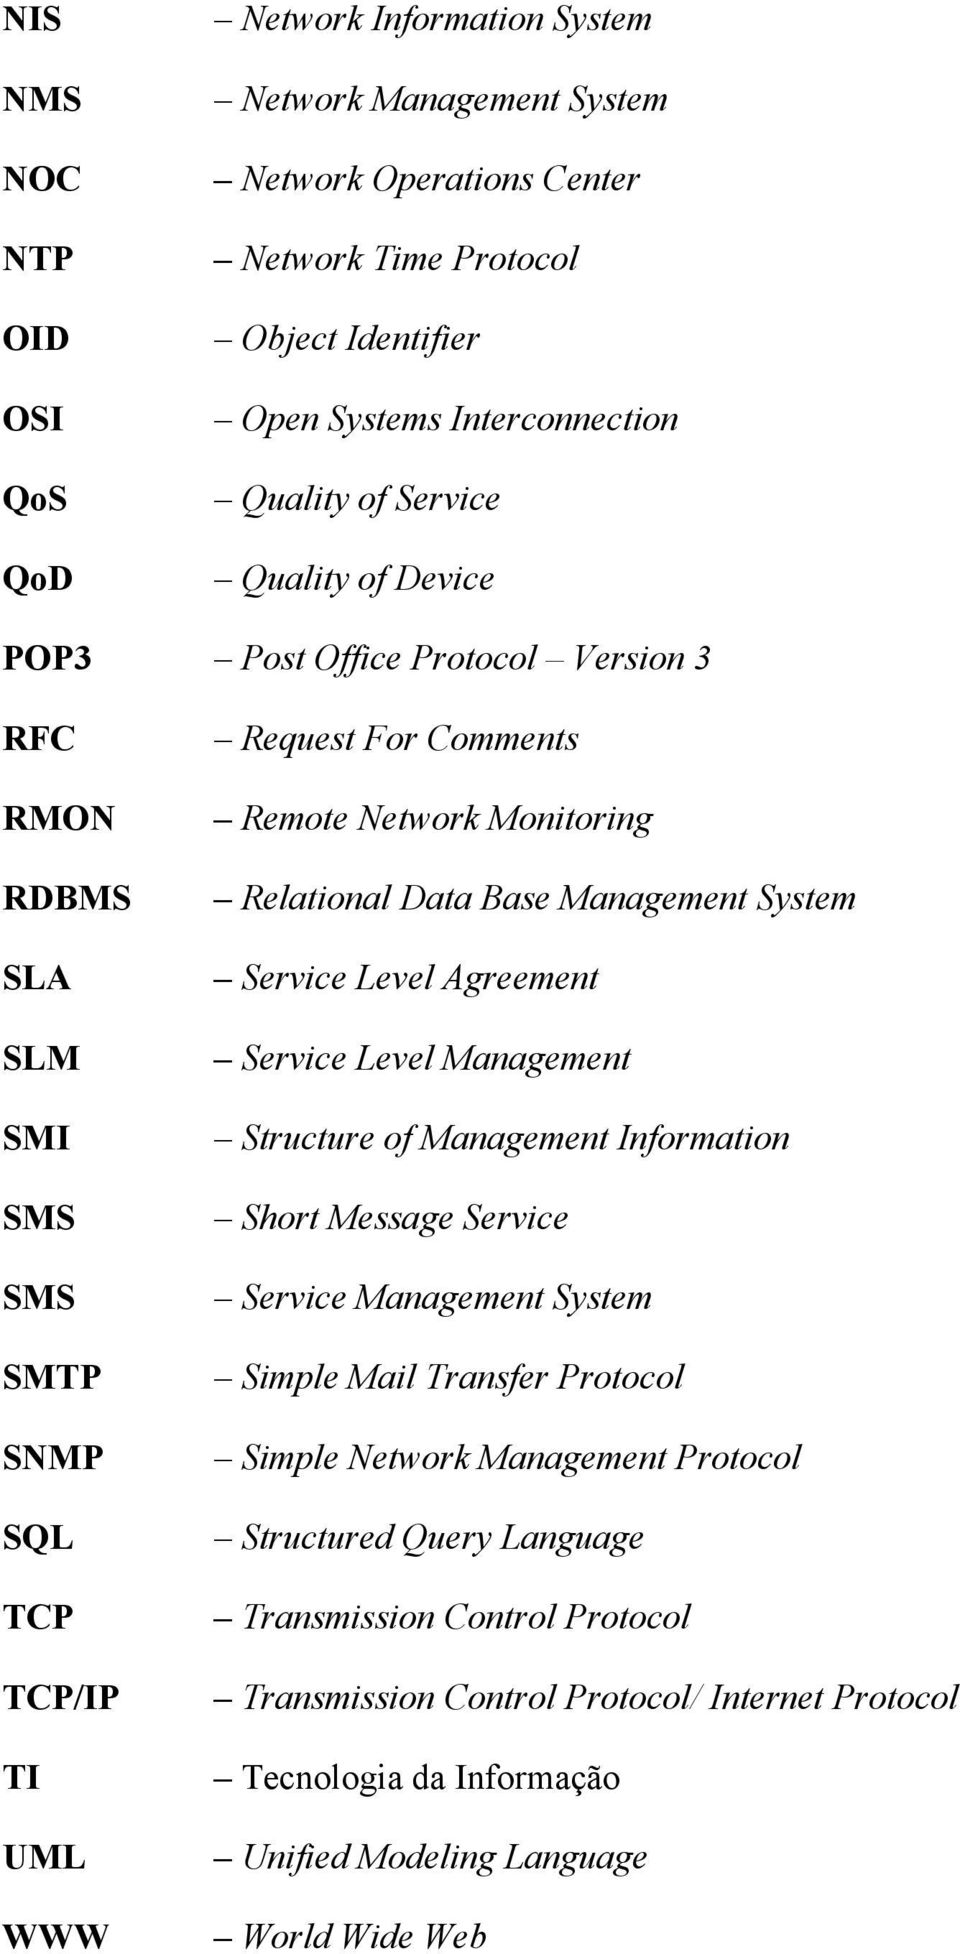 Data Base Management System Service Level Agreement Service Level Management Structure of Management Information Short Message Service Service Management System Simple Mail Transfer Protocol